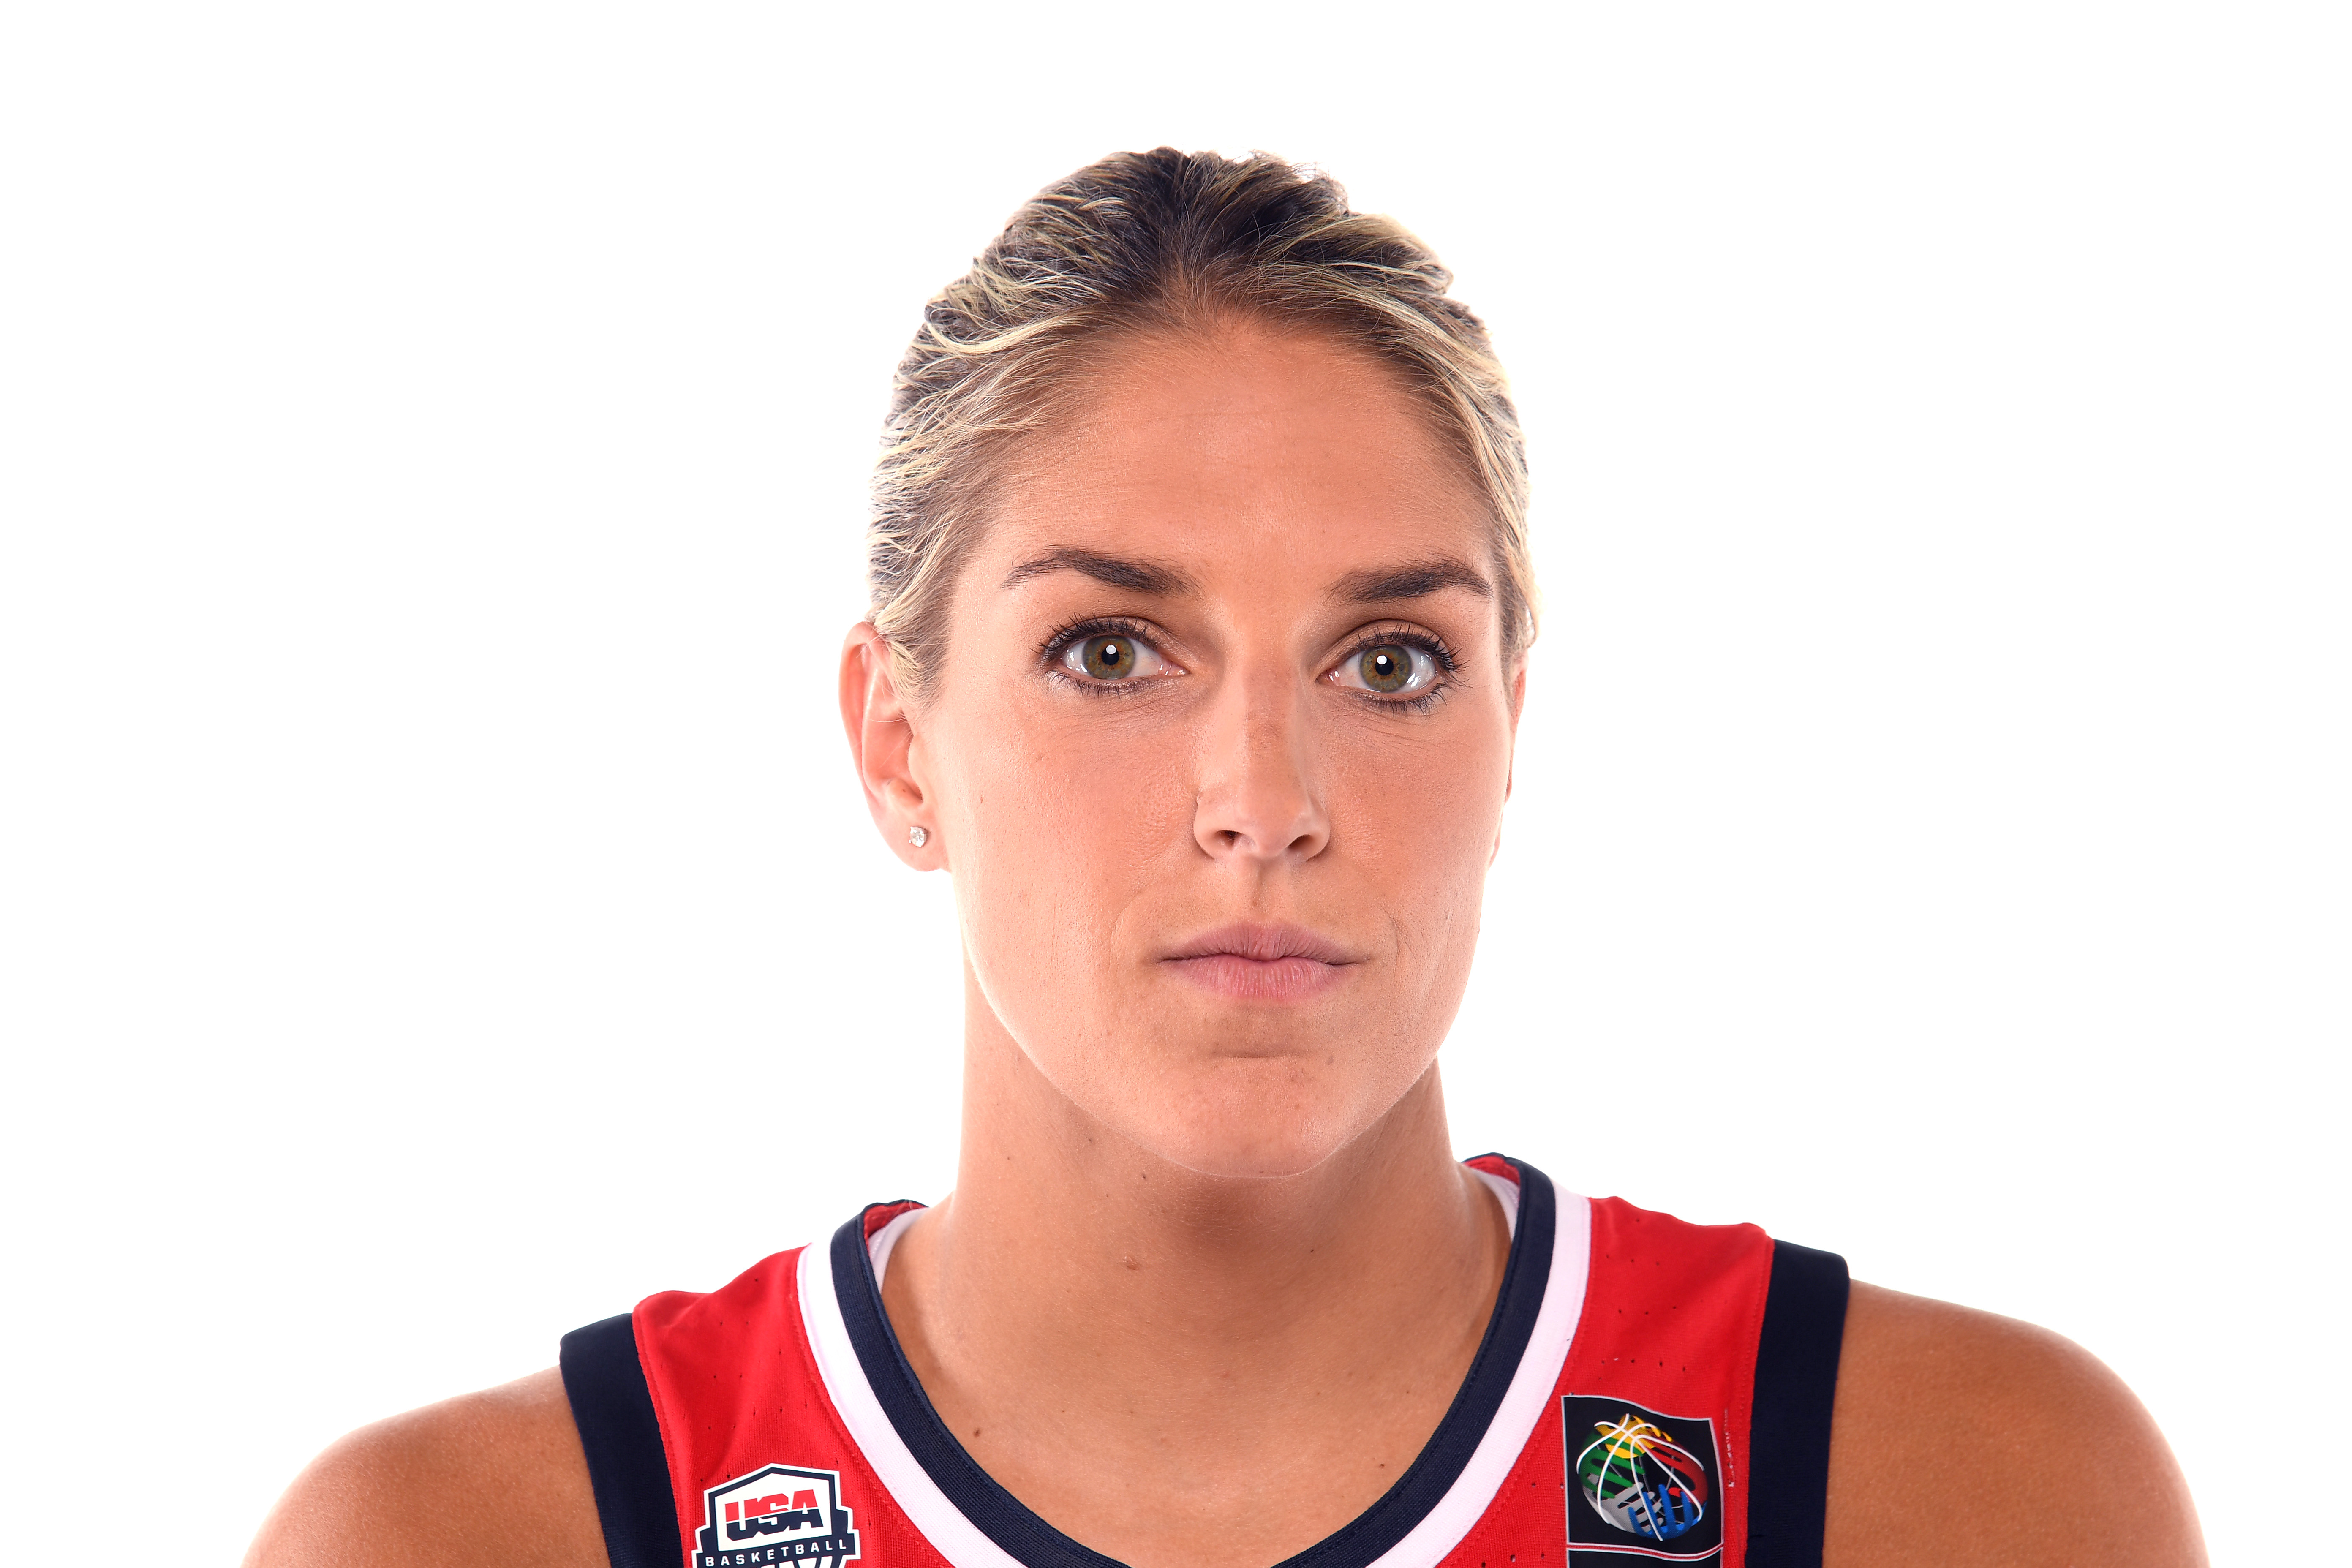 Basketball player Elena Delle Donne poses for a portrait during the Team USA Tokyo 2020 Olympics shoot on November 21, 2019 in West Hollywood, California.